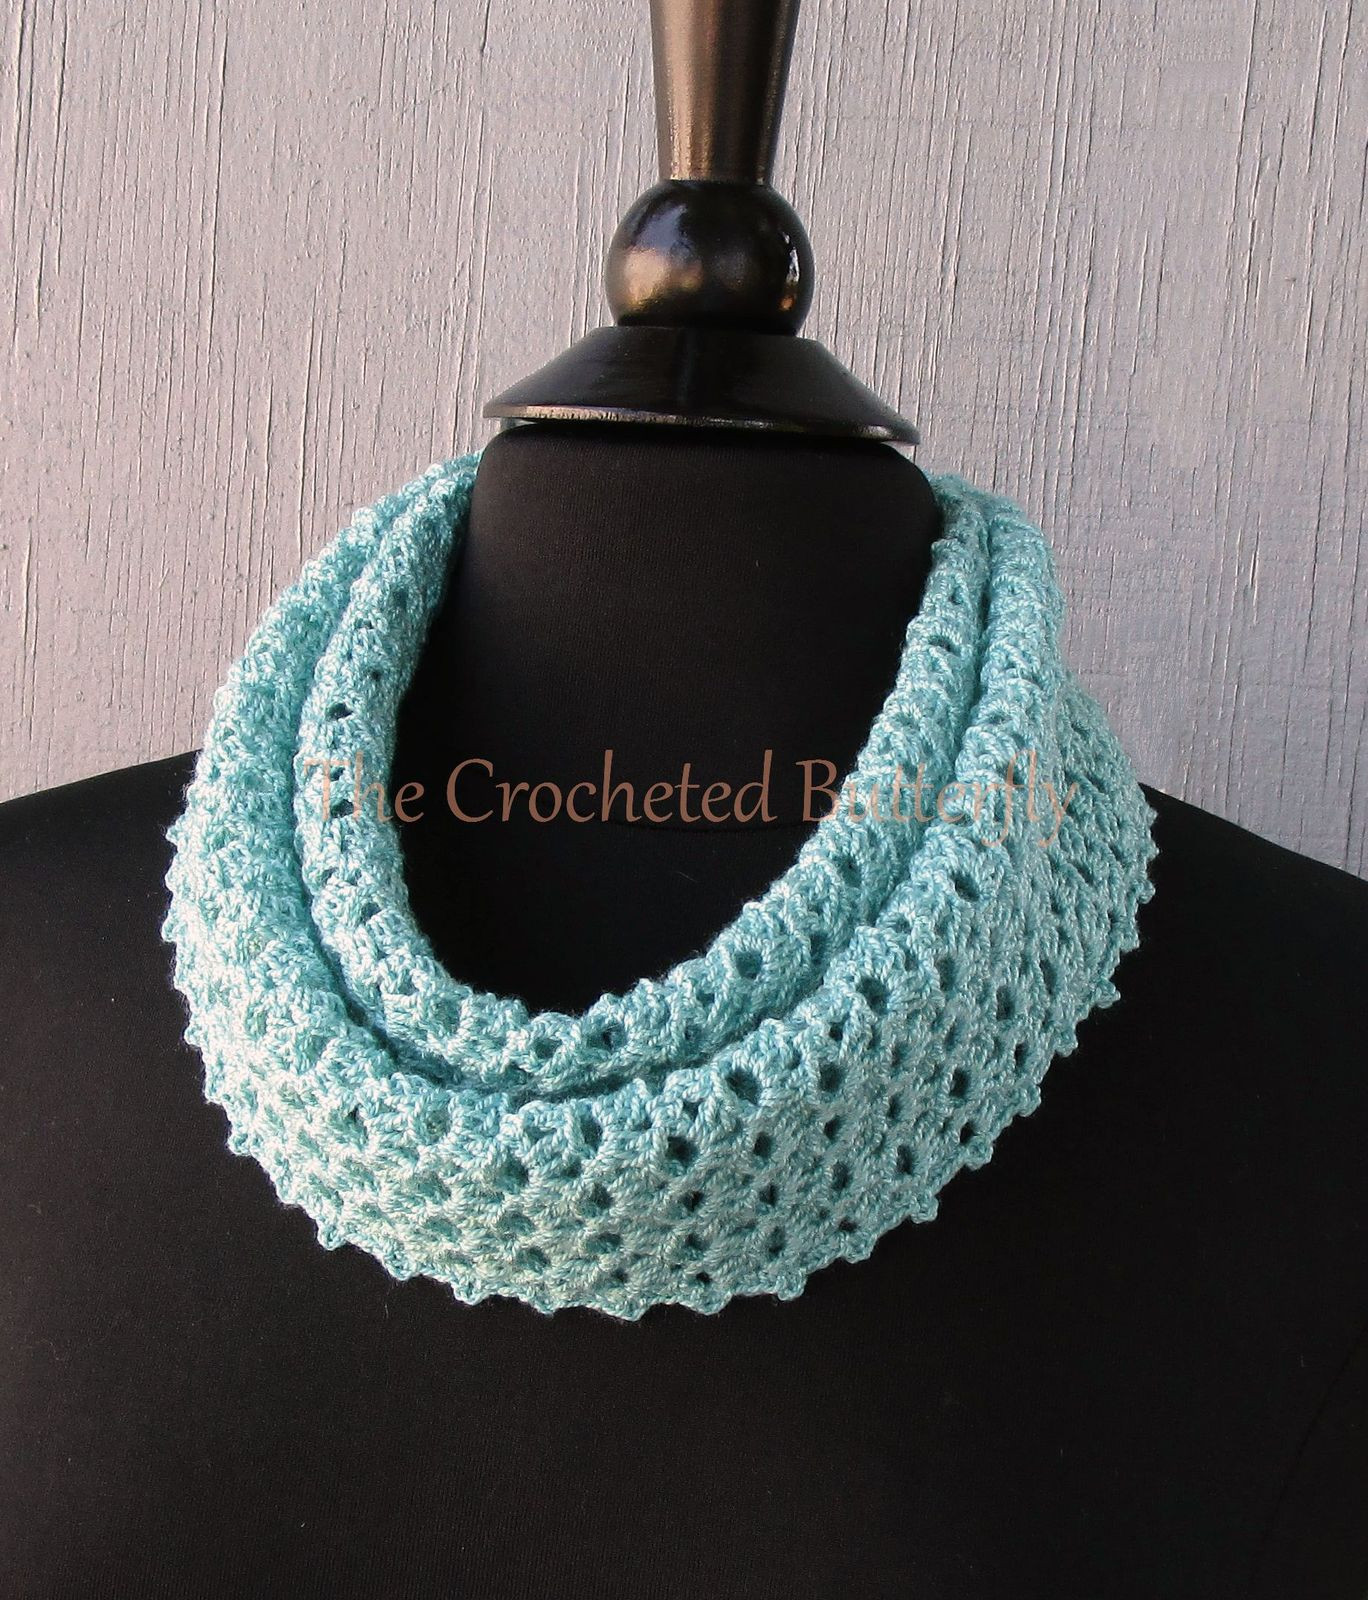 Crochet Accessories Awesome Crochet Pattern Lacy Eyelet Scarf and Similar Items Of New 47 Photos Crochet Accessories